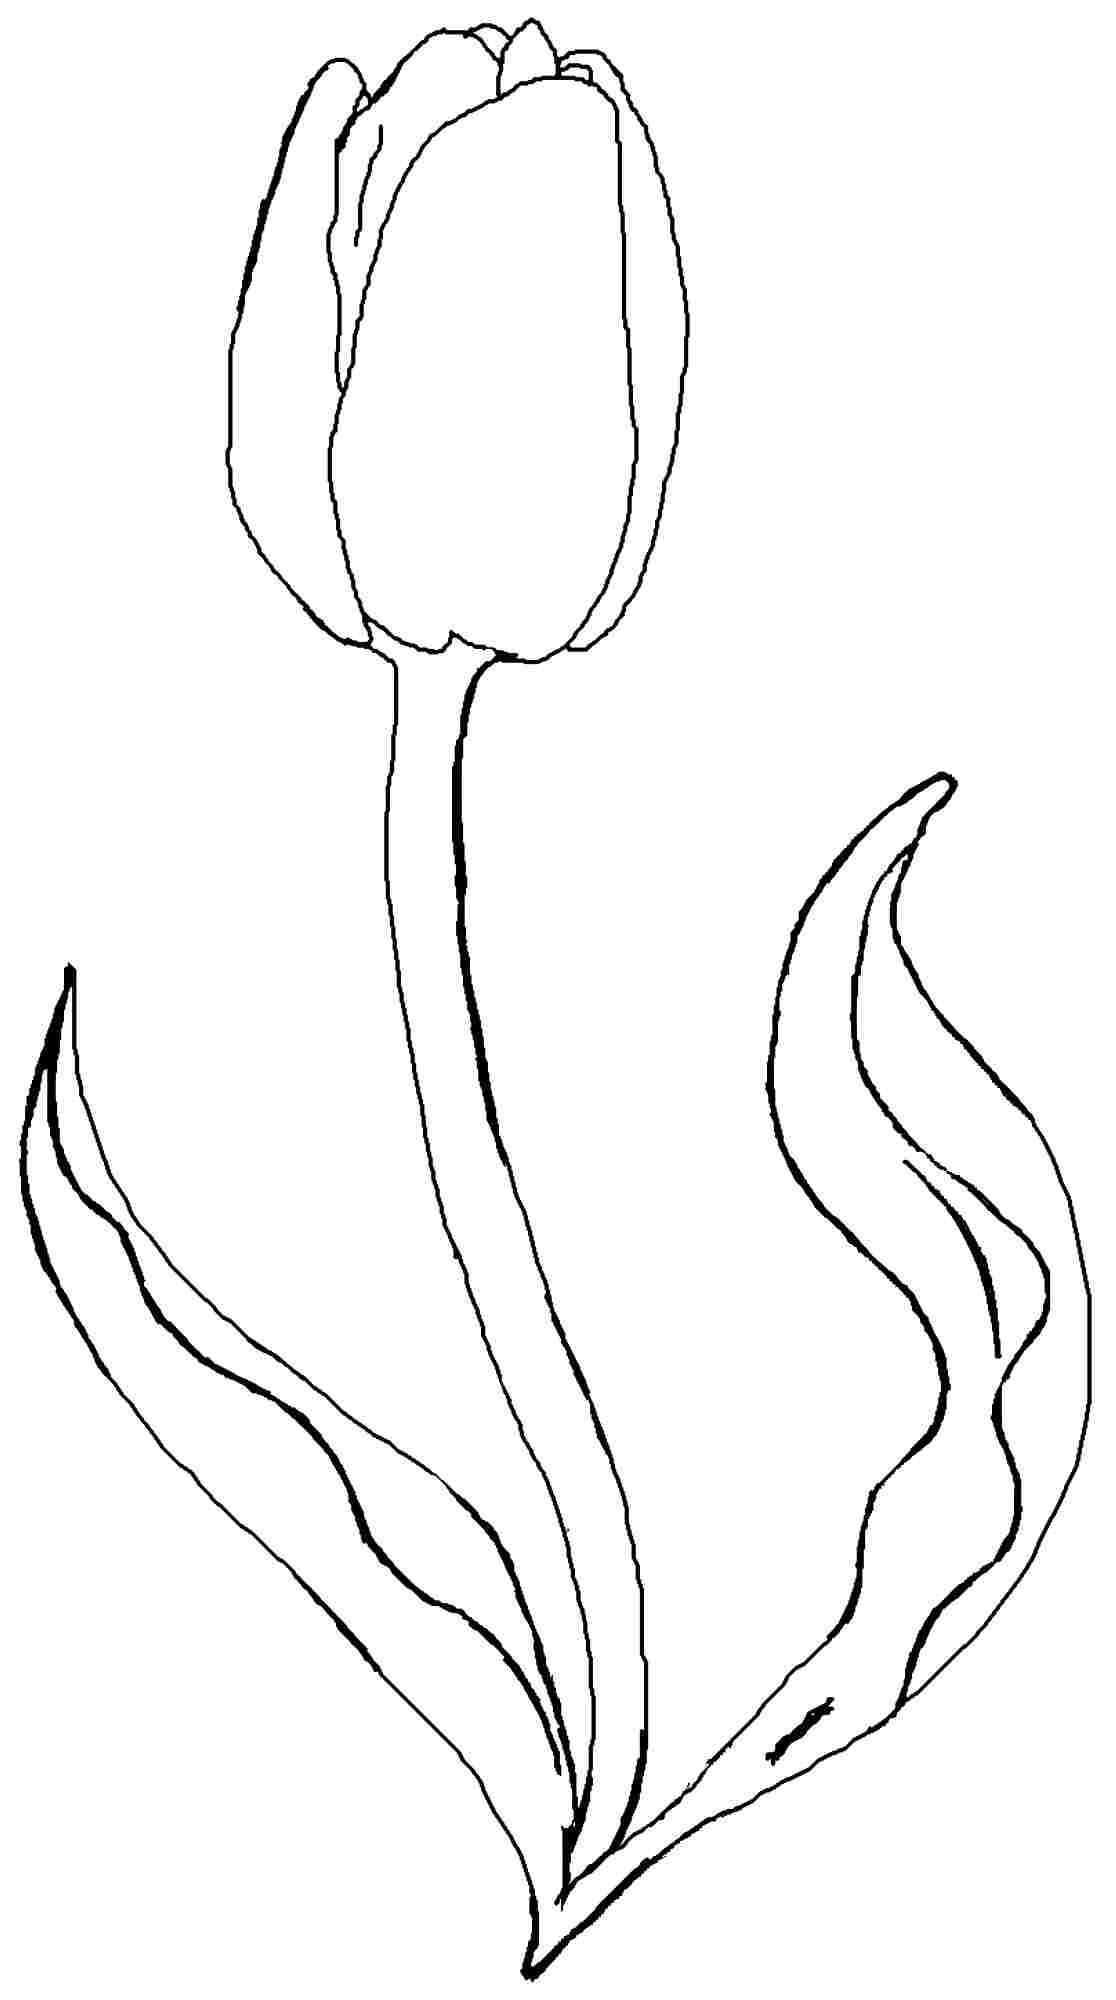 Tulip Flower Coloring Pages Free Printable Tulip Coloring Sketch